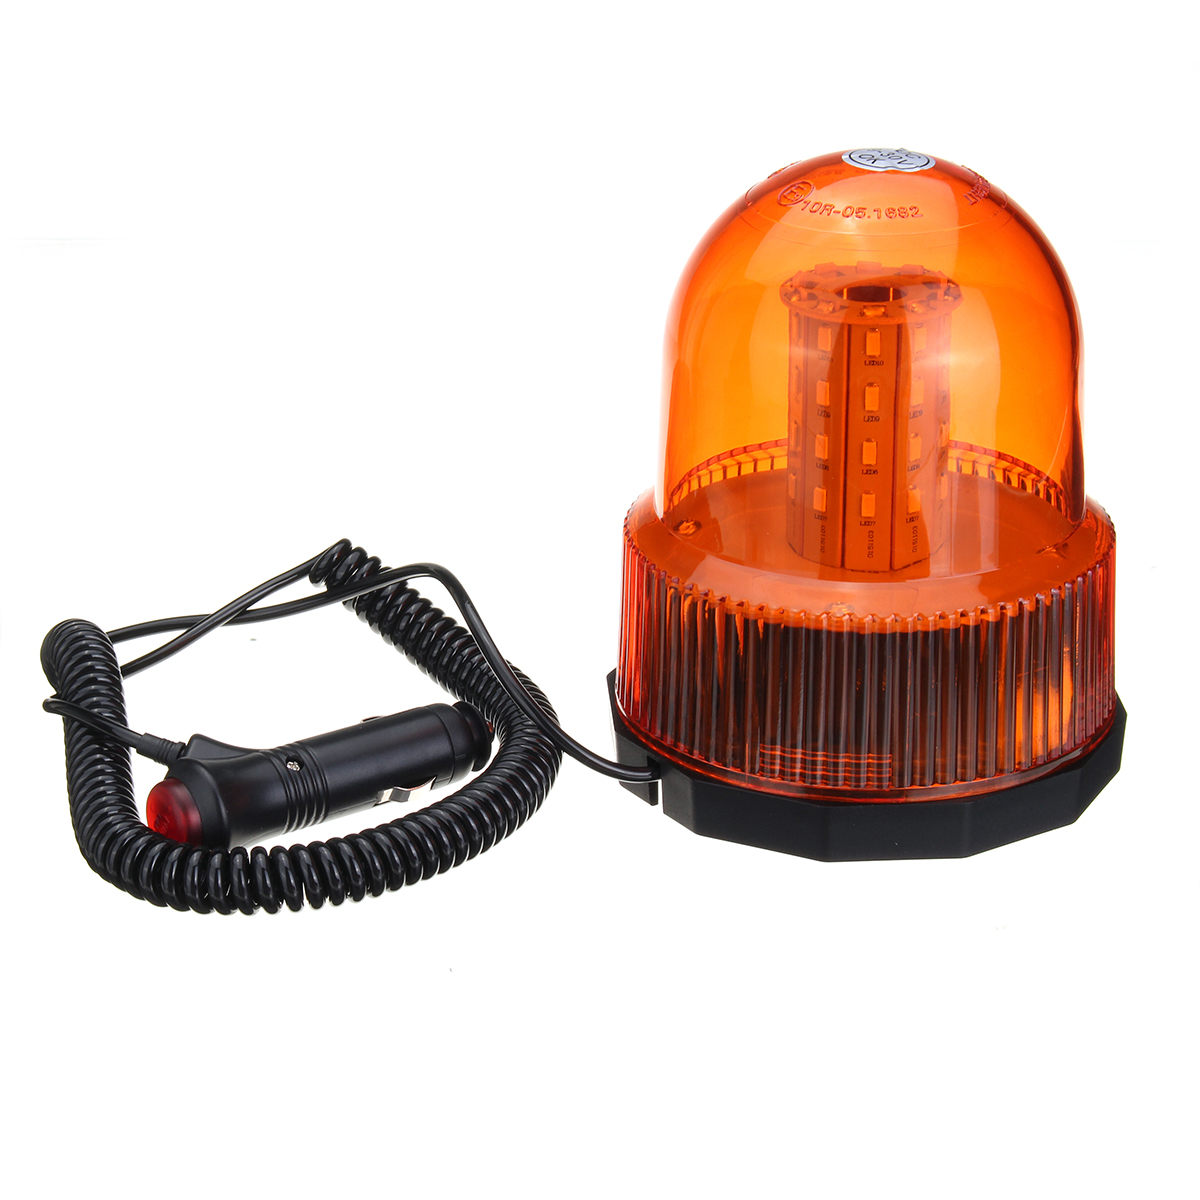 12-24V 40 LED Magnetic Mount Rotating Flashing Amber Dome Beacon Recovery Warning Light Roadway Safety Traffic Light 10 led led beacon magnetic bolt recovery flashing warning strobe light lightbar amber